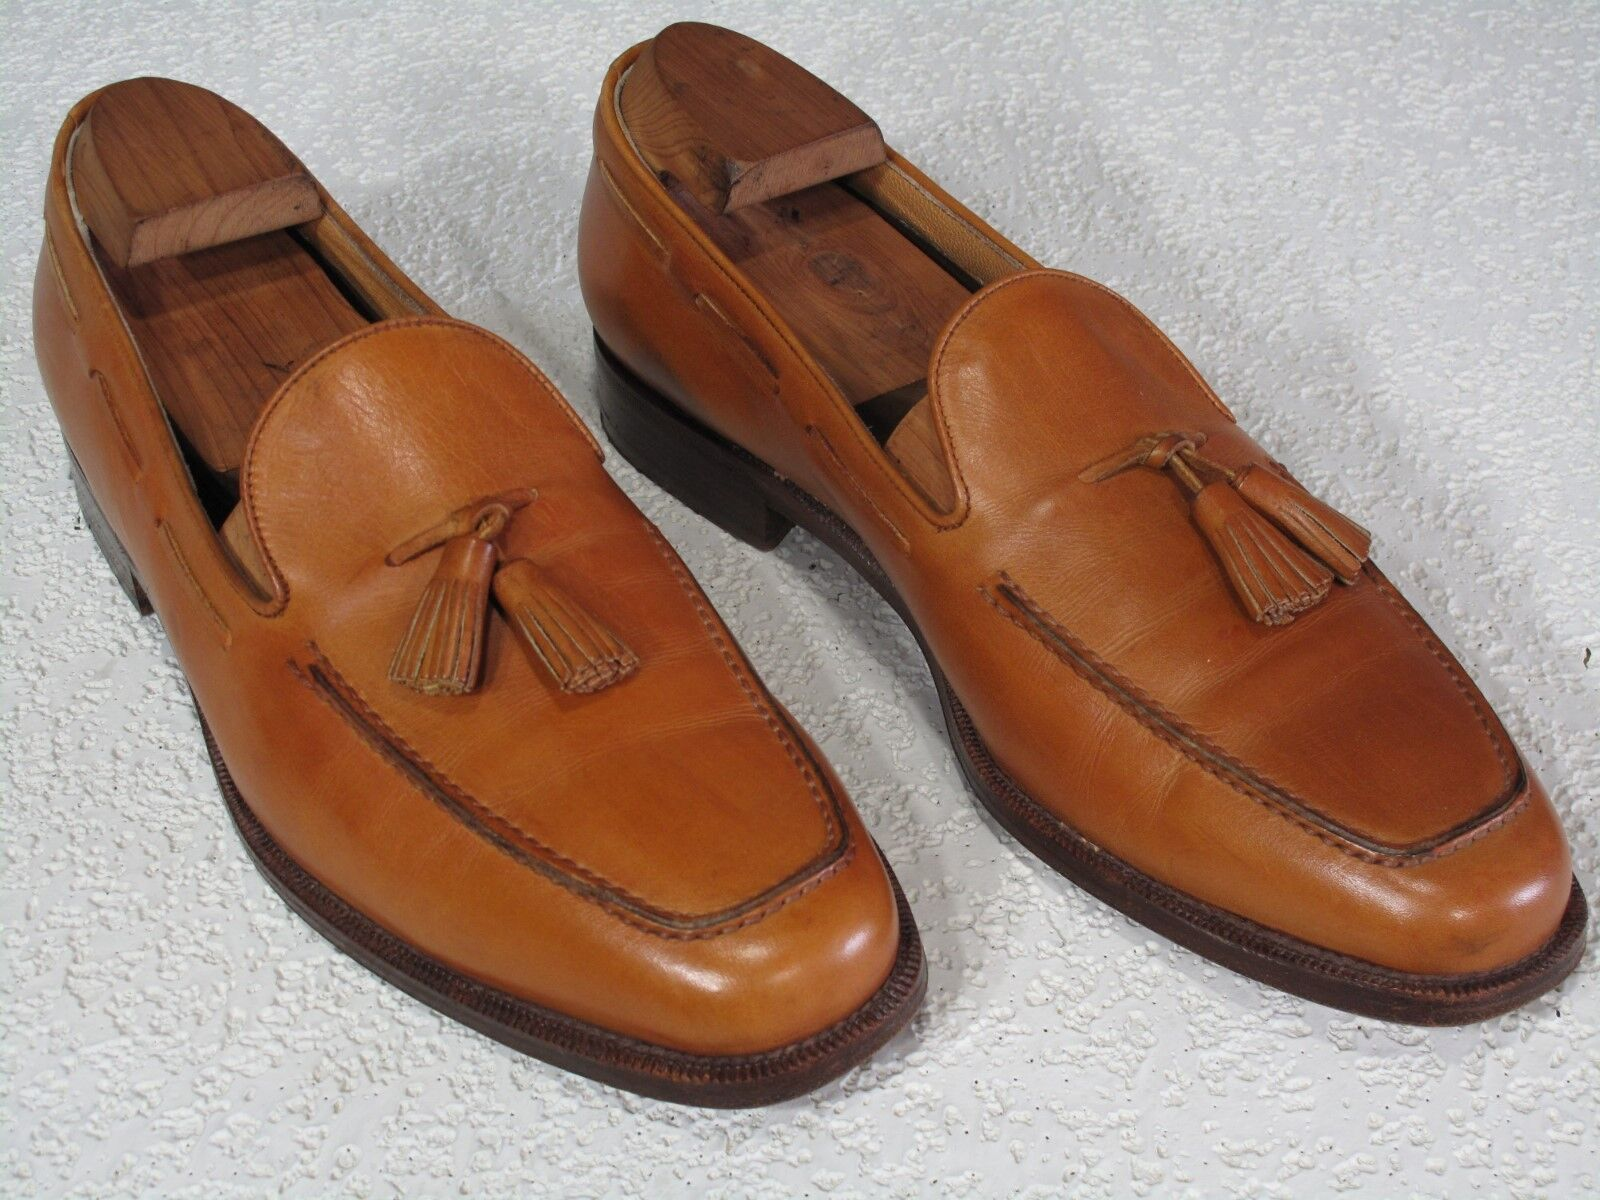 475 BARNEYS New York Cognac Calfskin Tassel Loafers Loafers Loafers Shoes 10.5  Made in Italy cbd5ae